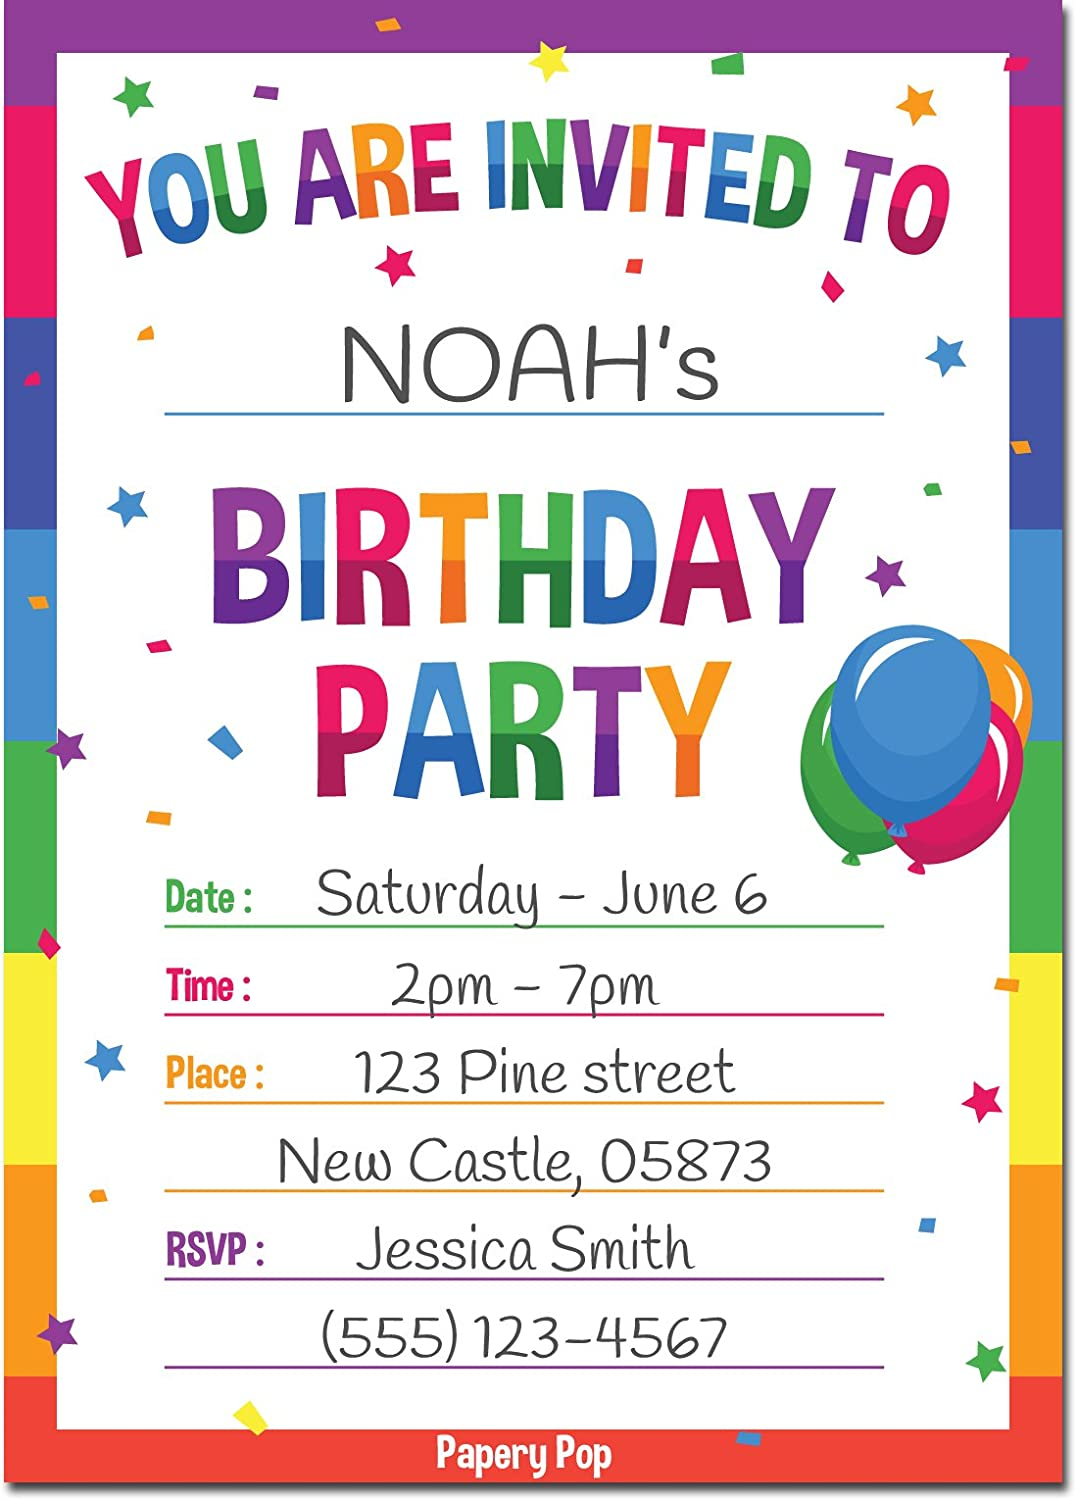 Invitation birthday party yeniscale invitation birthday party stopboris Choice Image